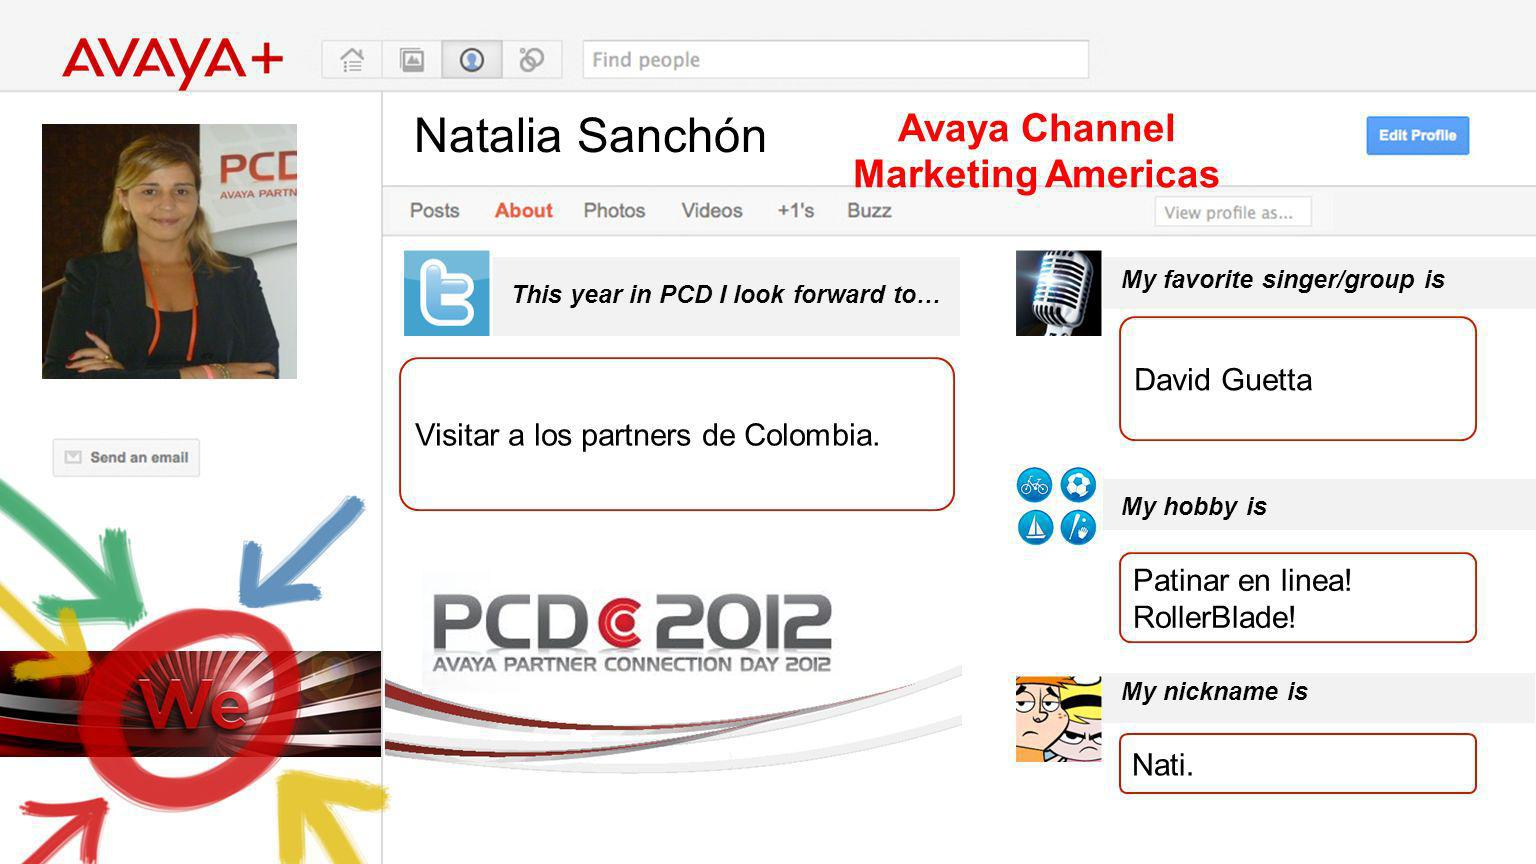 Natalia Sanchón This year in PCD I look forward to… Avaya Channel Marketing Americas Visitar a los partners de Colombia. My favorite singer/group is M